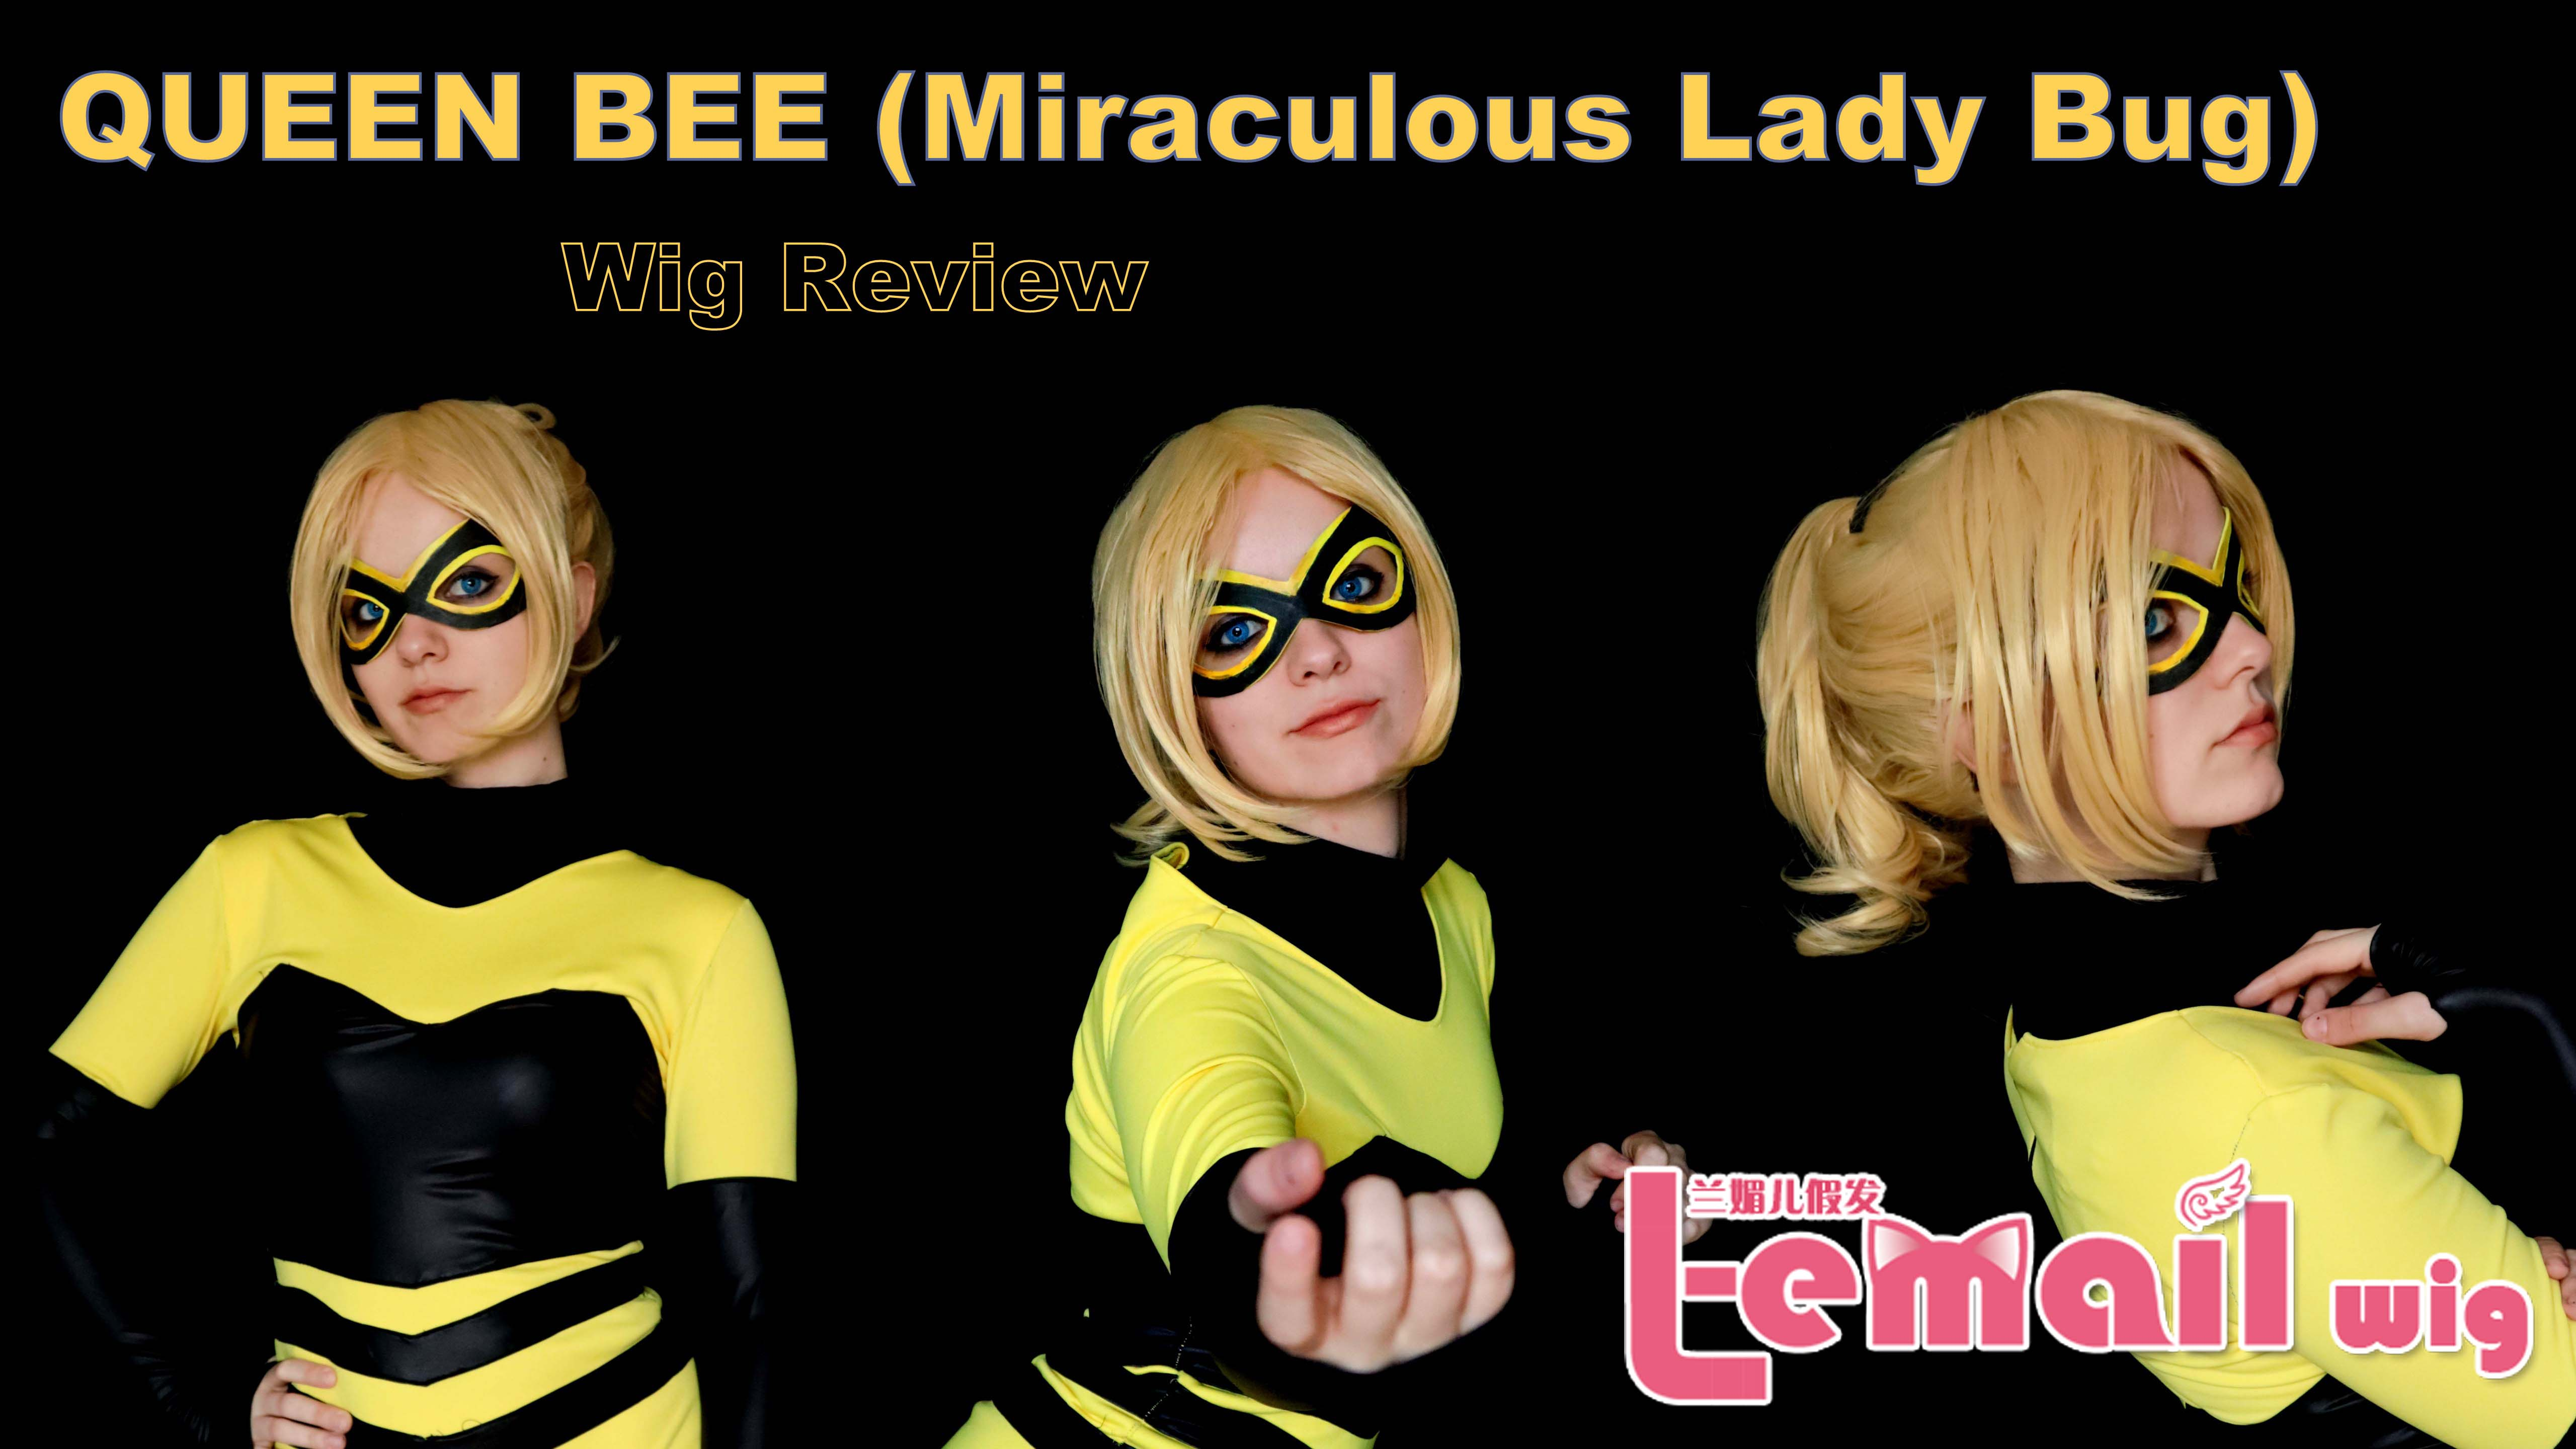 Wig Review: Queen Bee (Miraculous Lady Bug) from L-email wigs